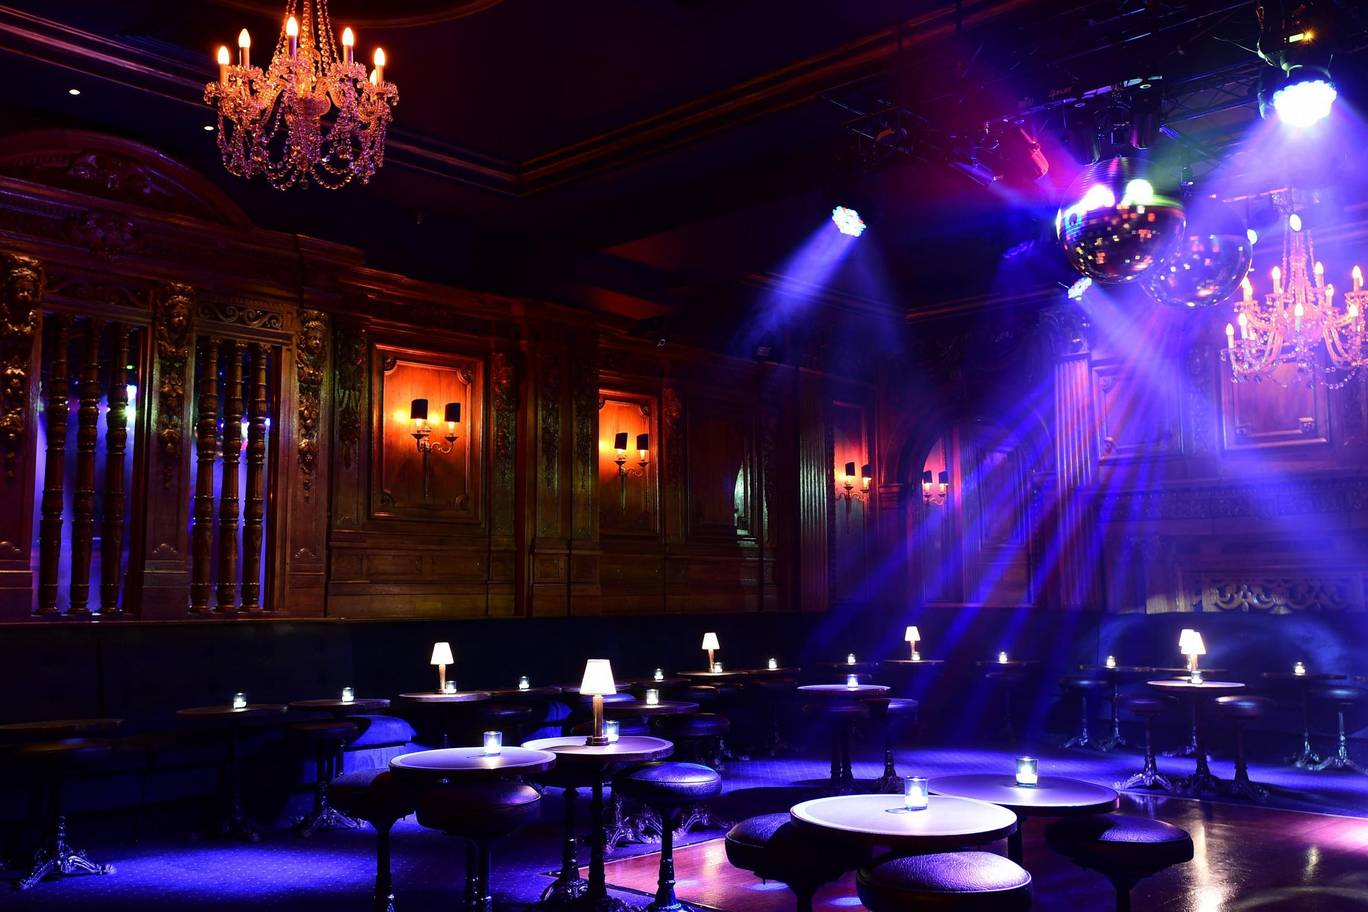 disco - Inside the hedonistic Mayfair nightclub loved by the stars